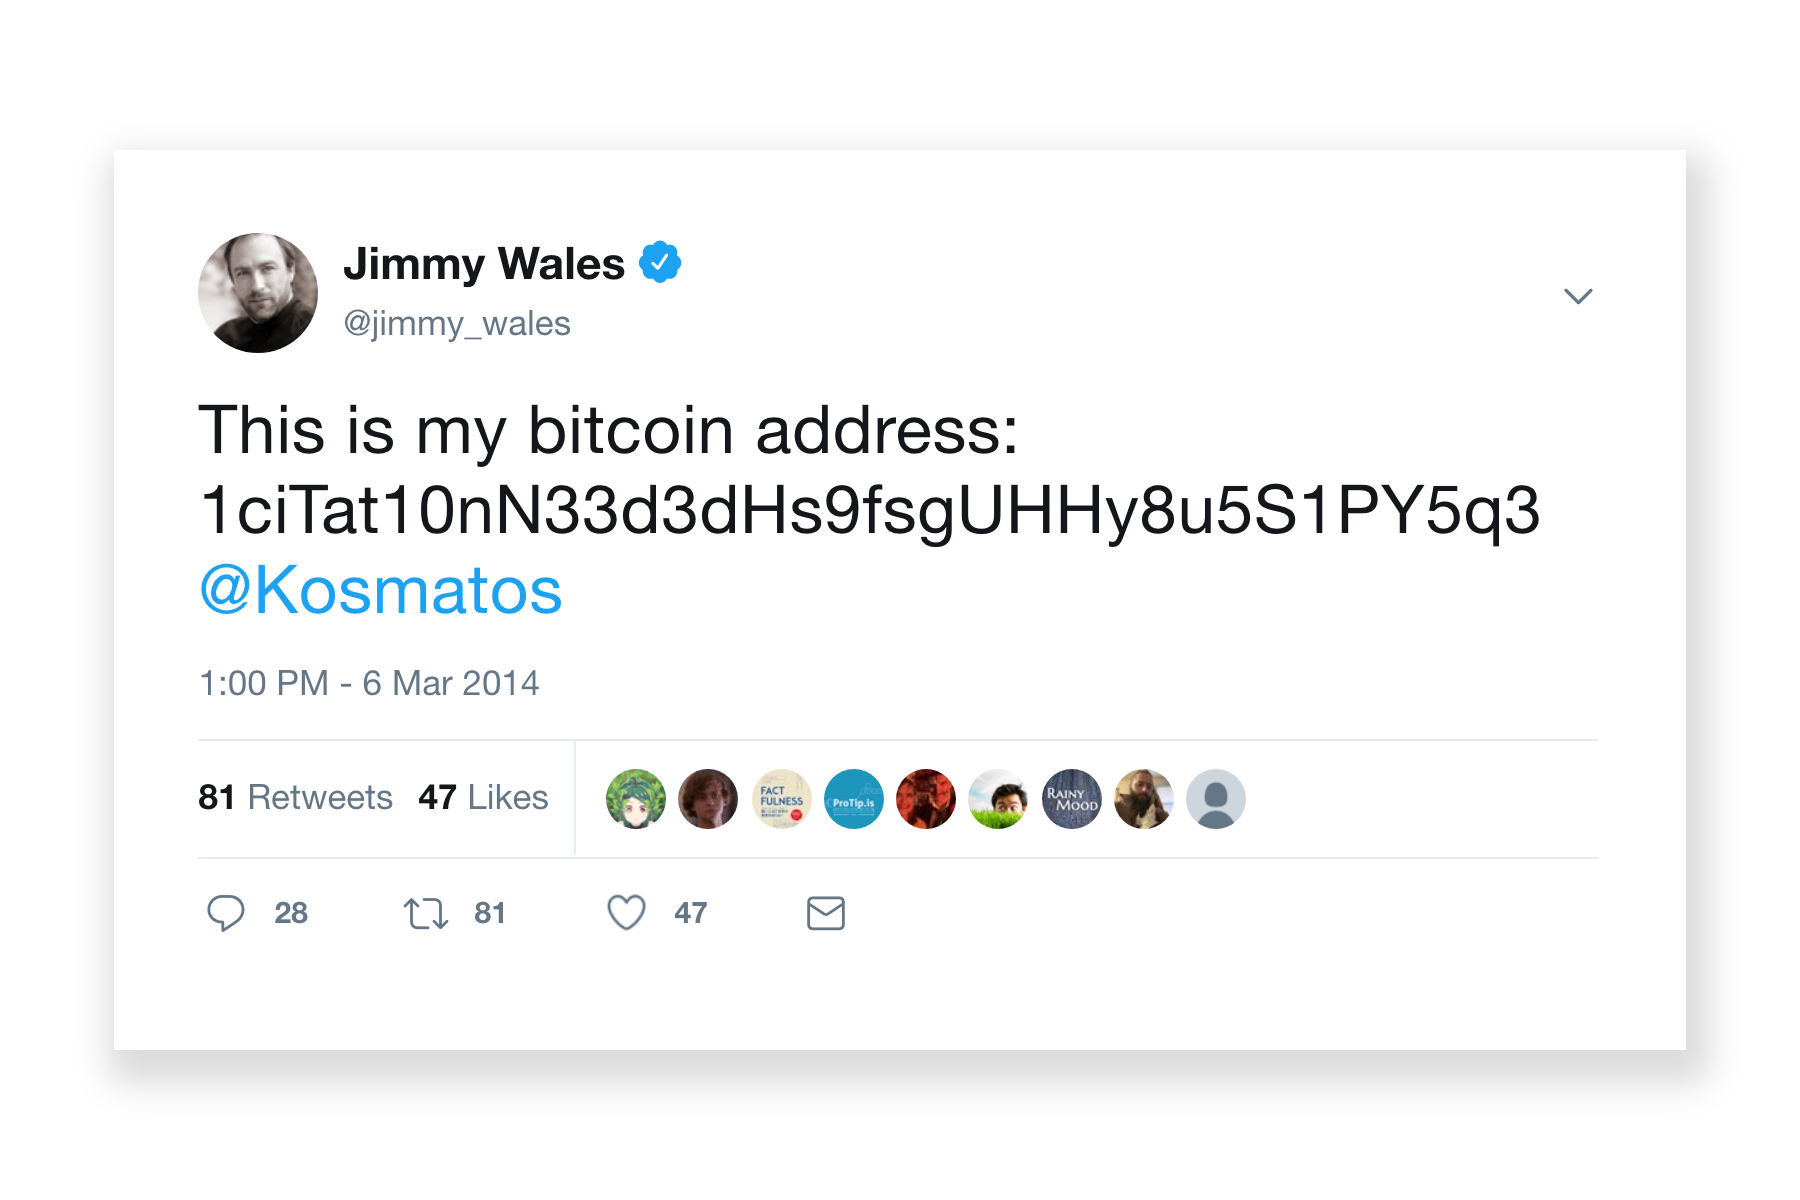 Jimmy Wales tweeting his Bitcoin address